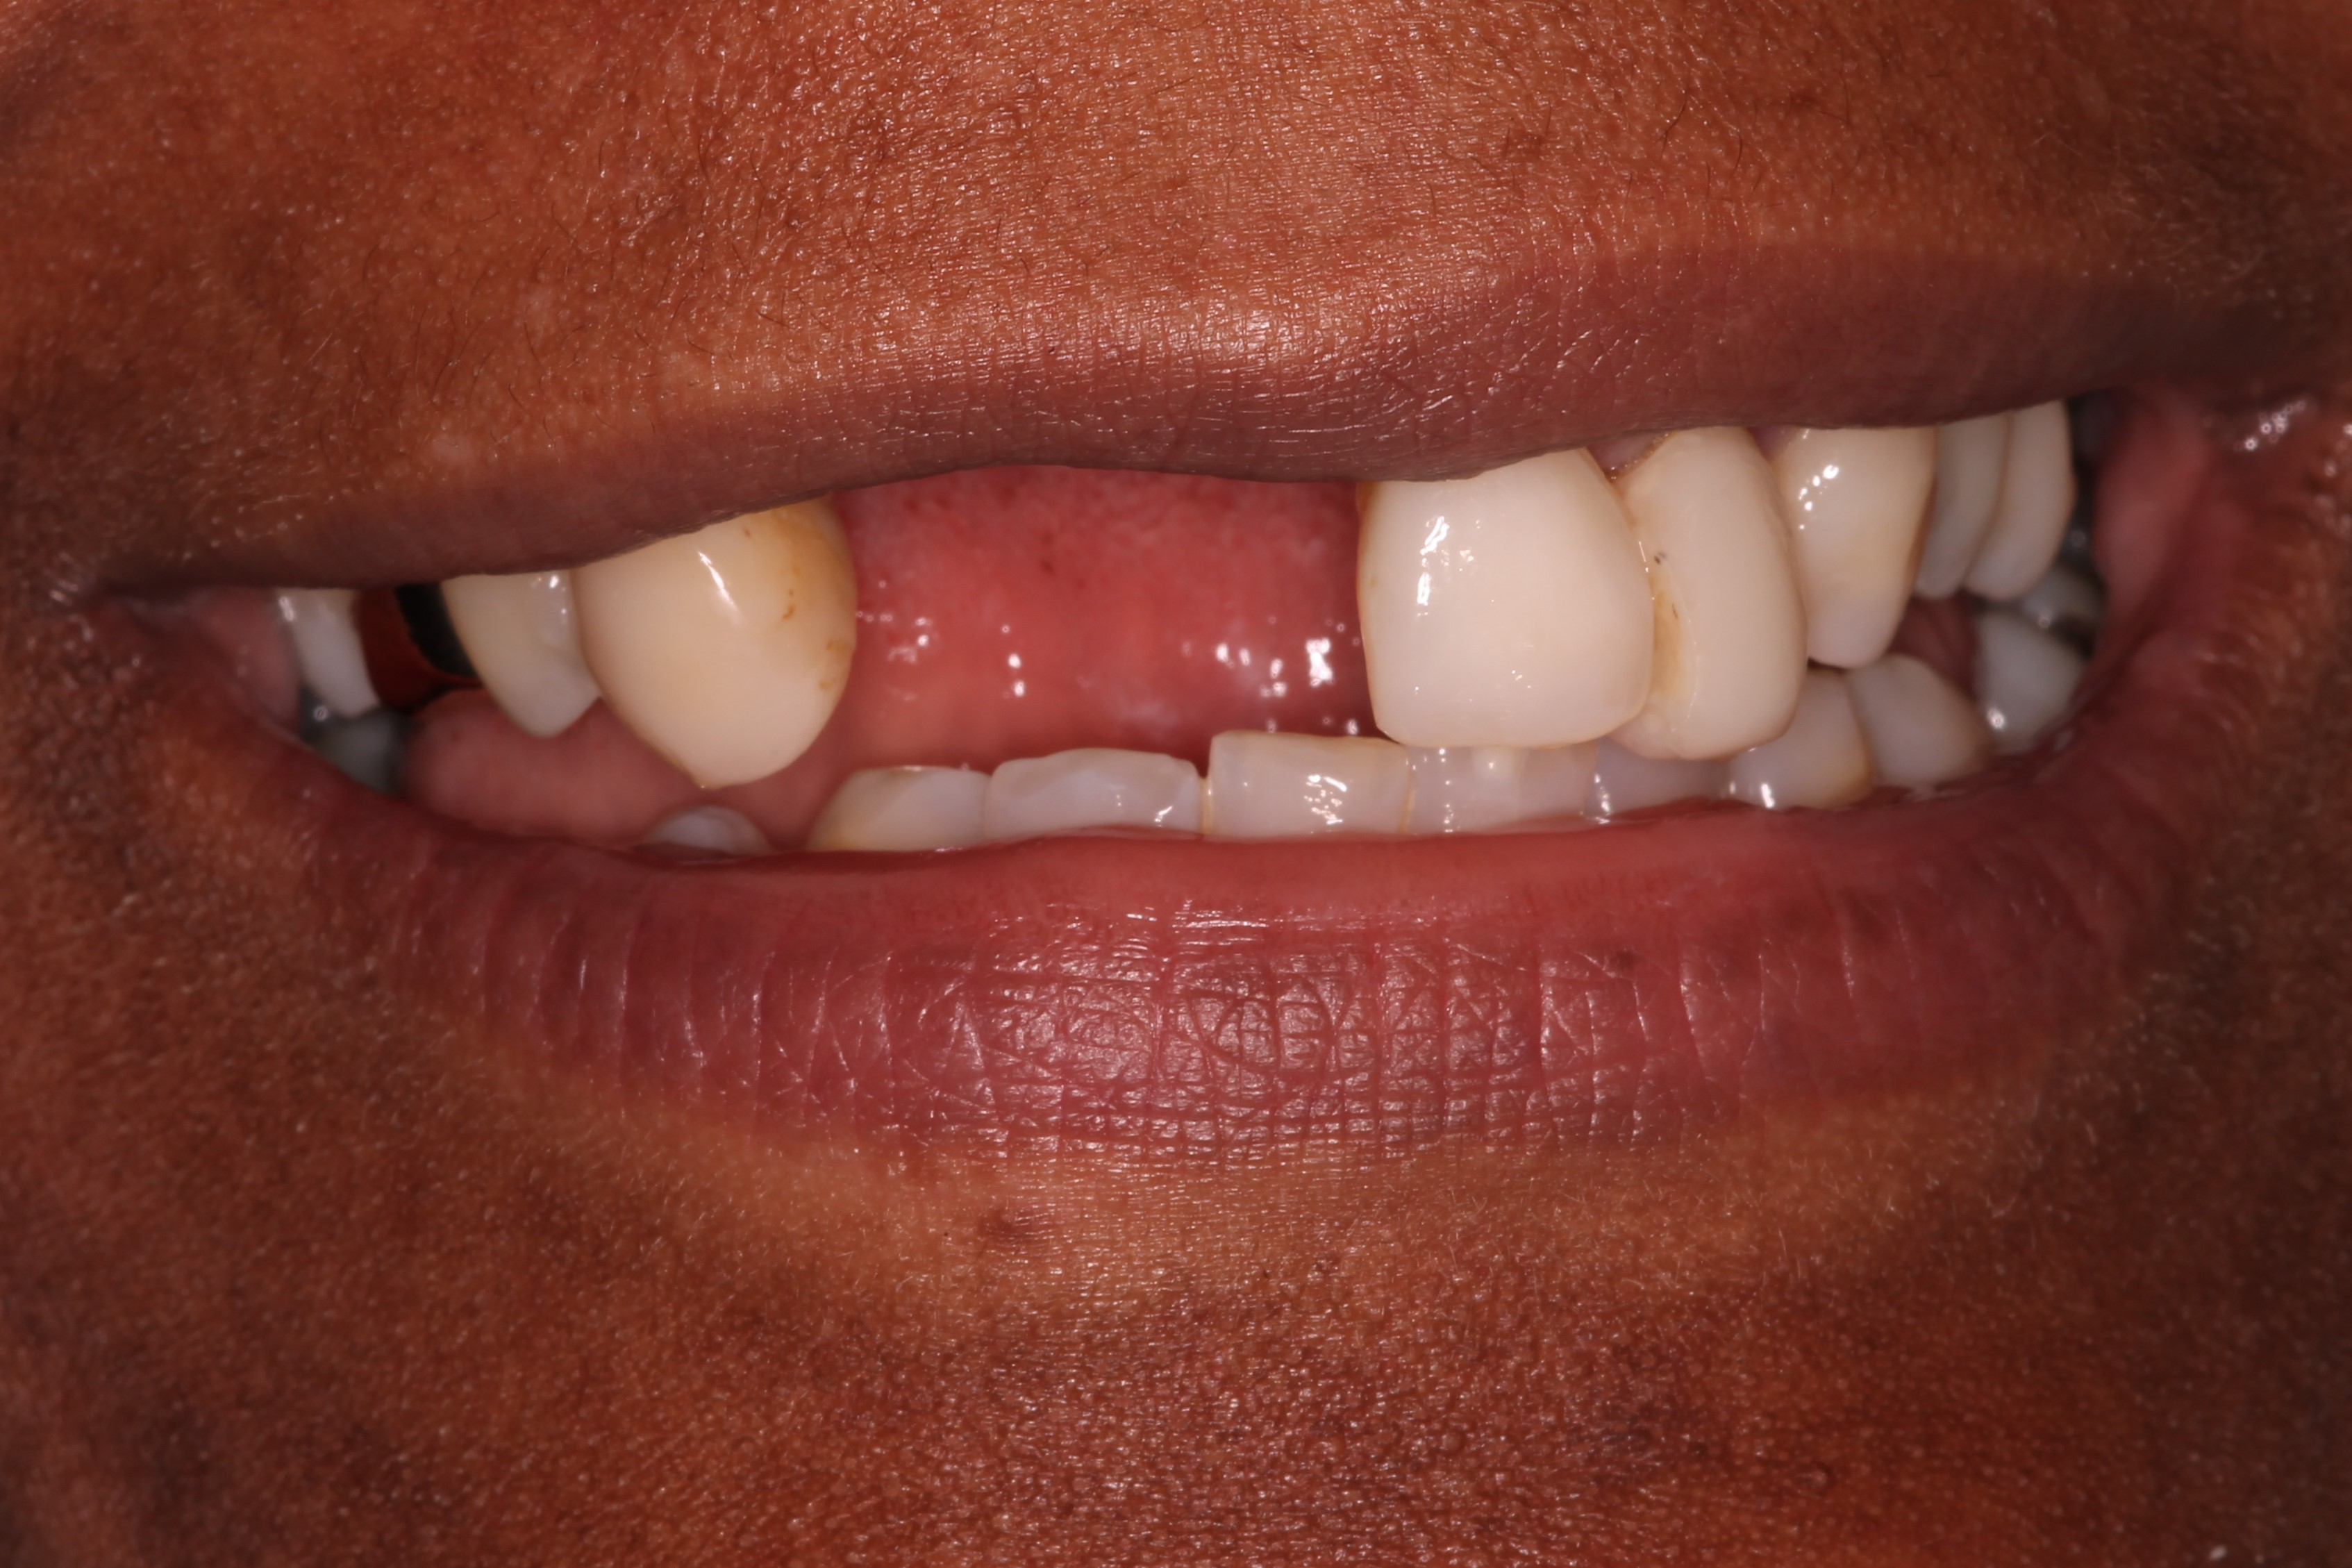 patient with two missing teeth before dental implant treatment